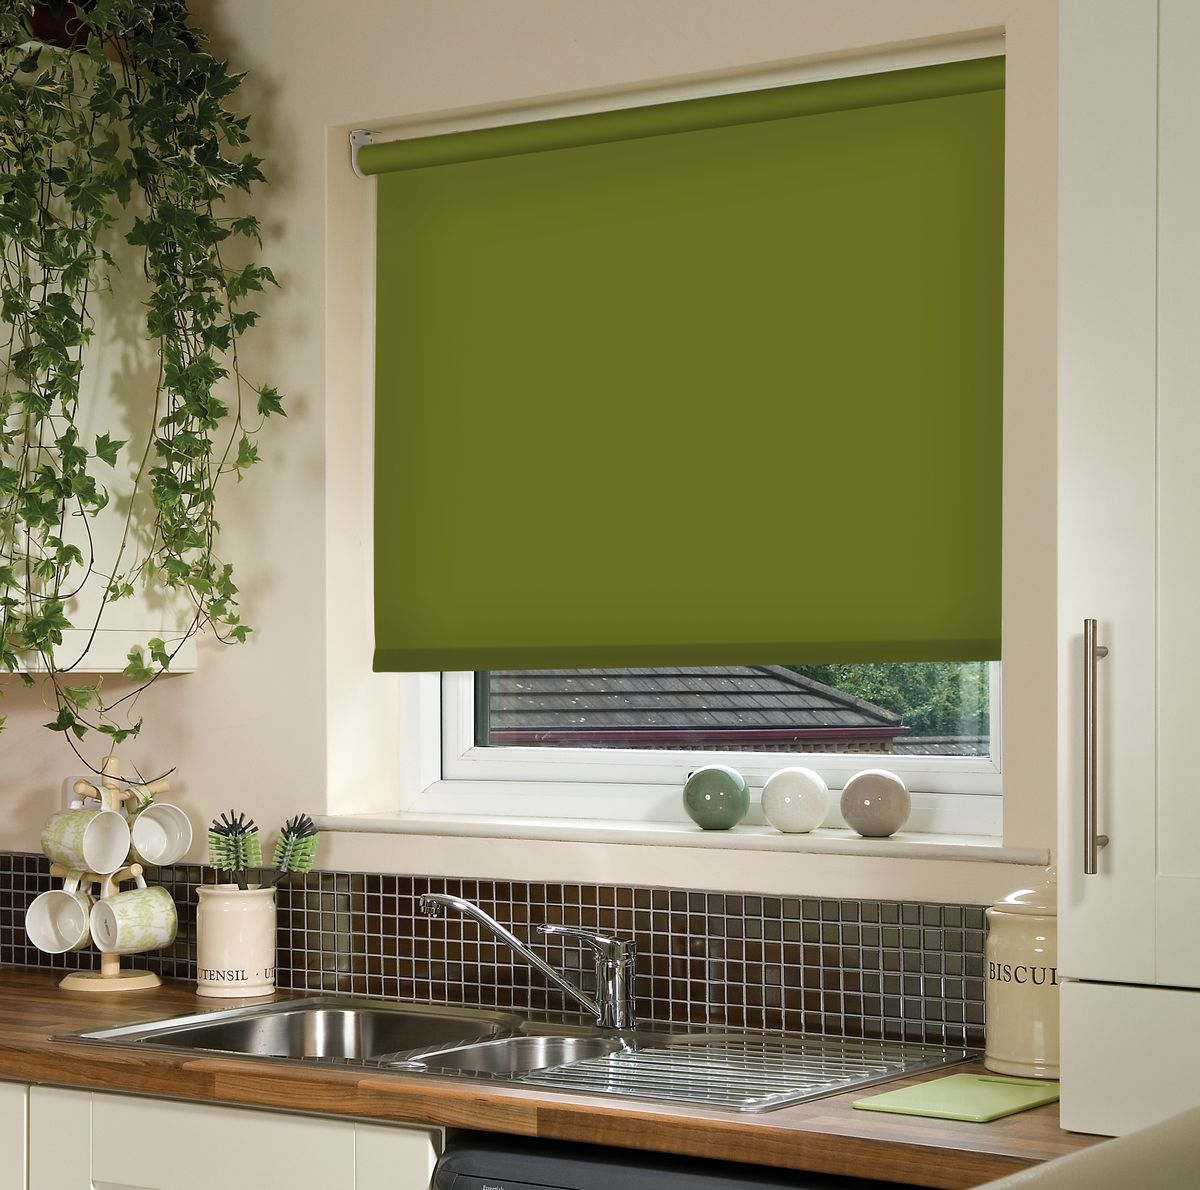 Roller Blinds: Practical and Good Looking Window Treatment. Wide thick green curtain for kitchen